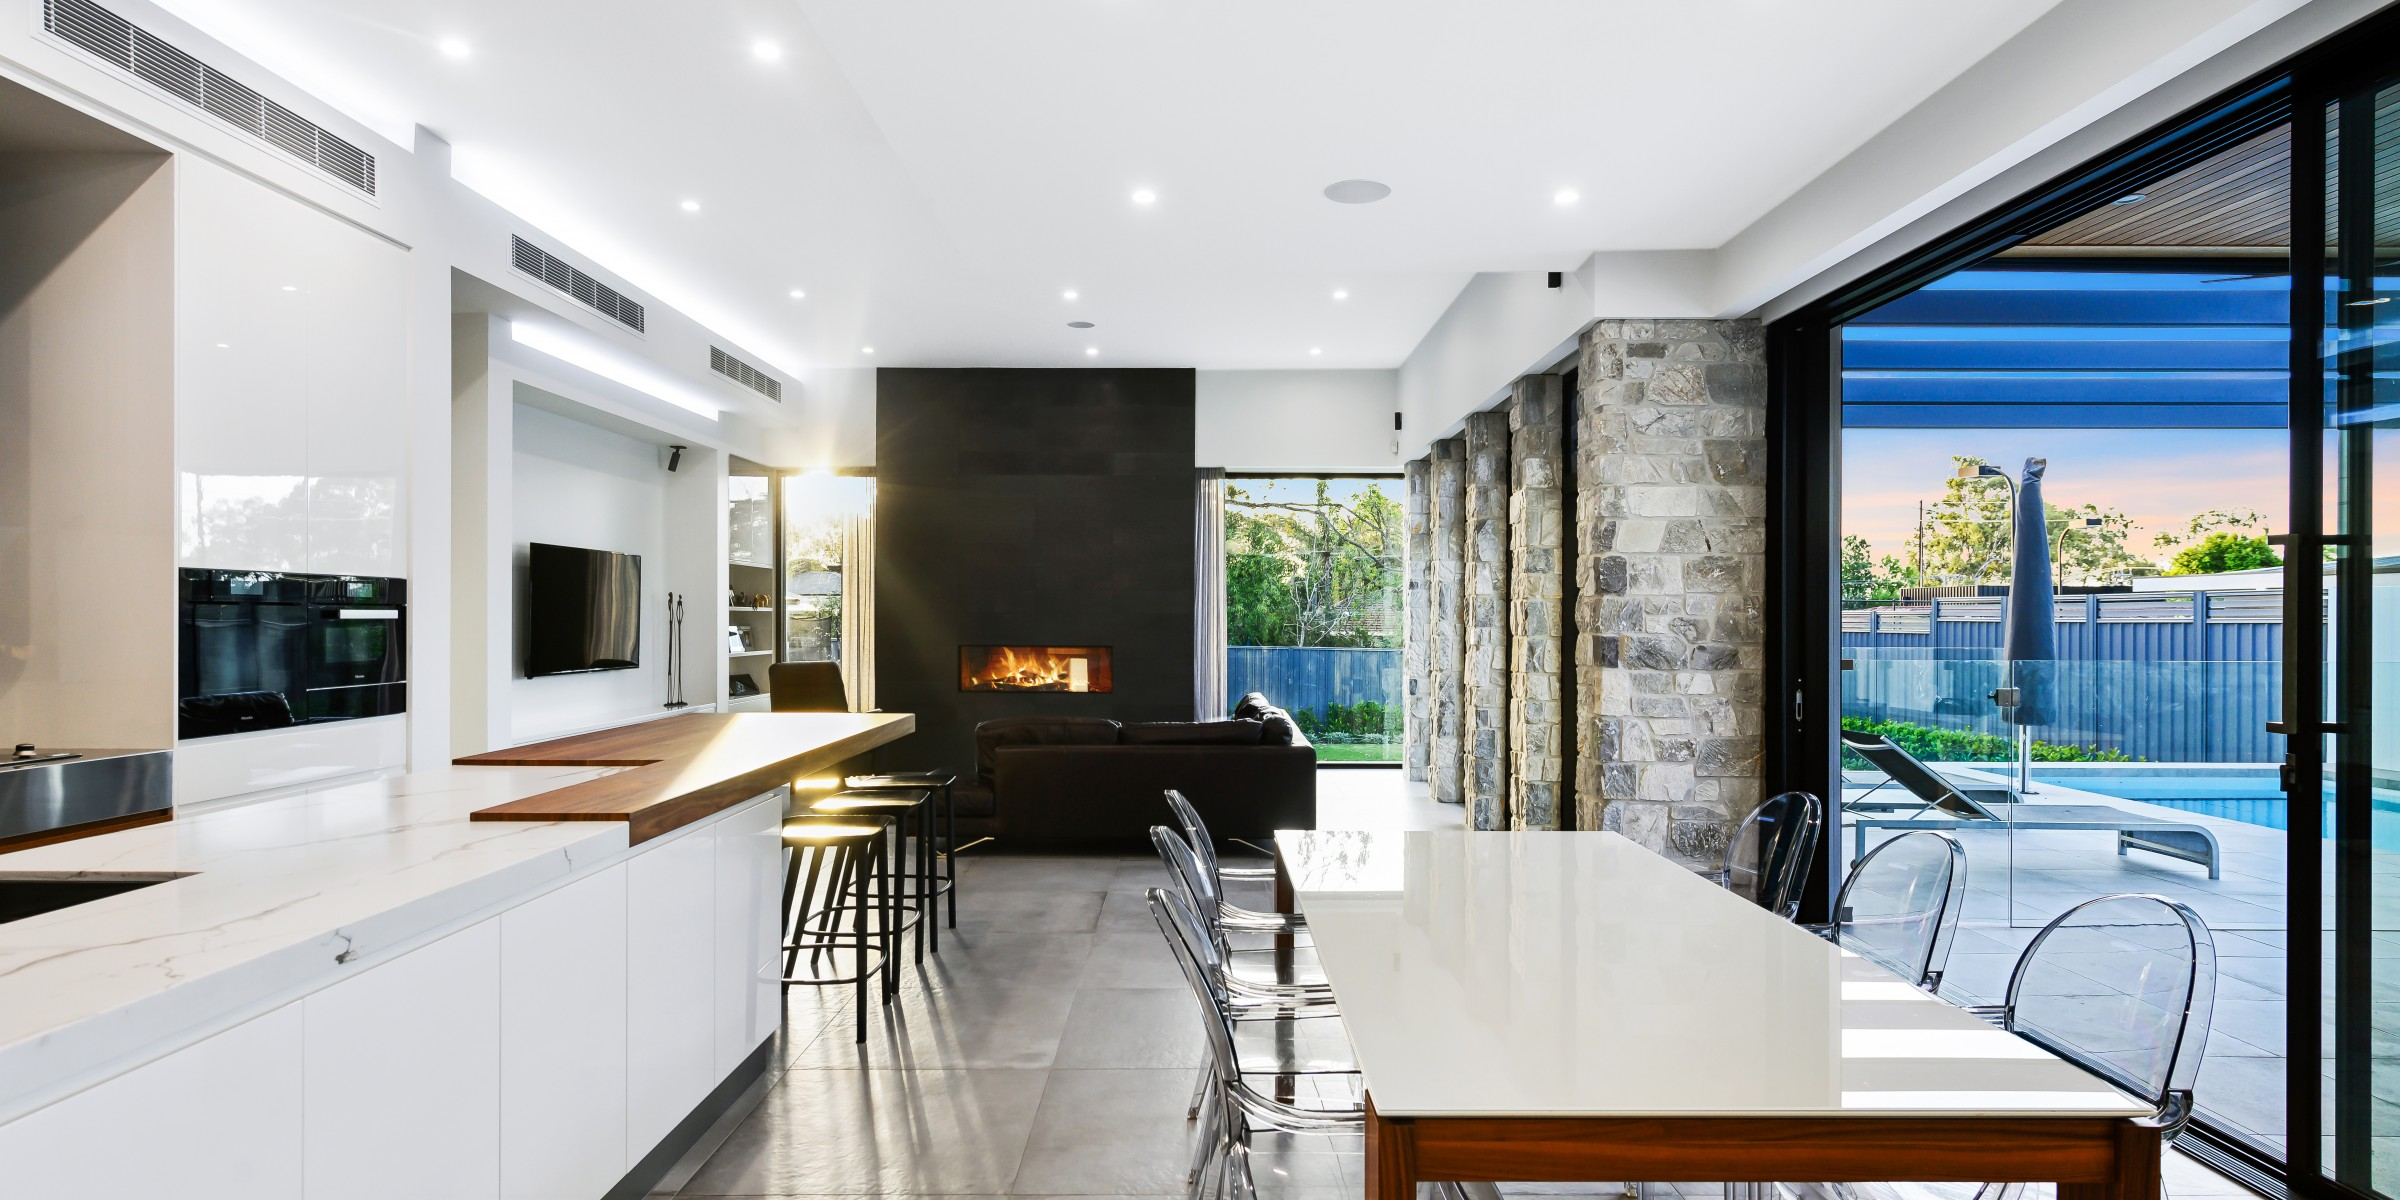 Interior architecture of dining area, Alpha Road, Kensington Park